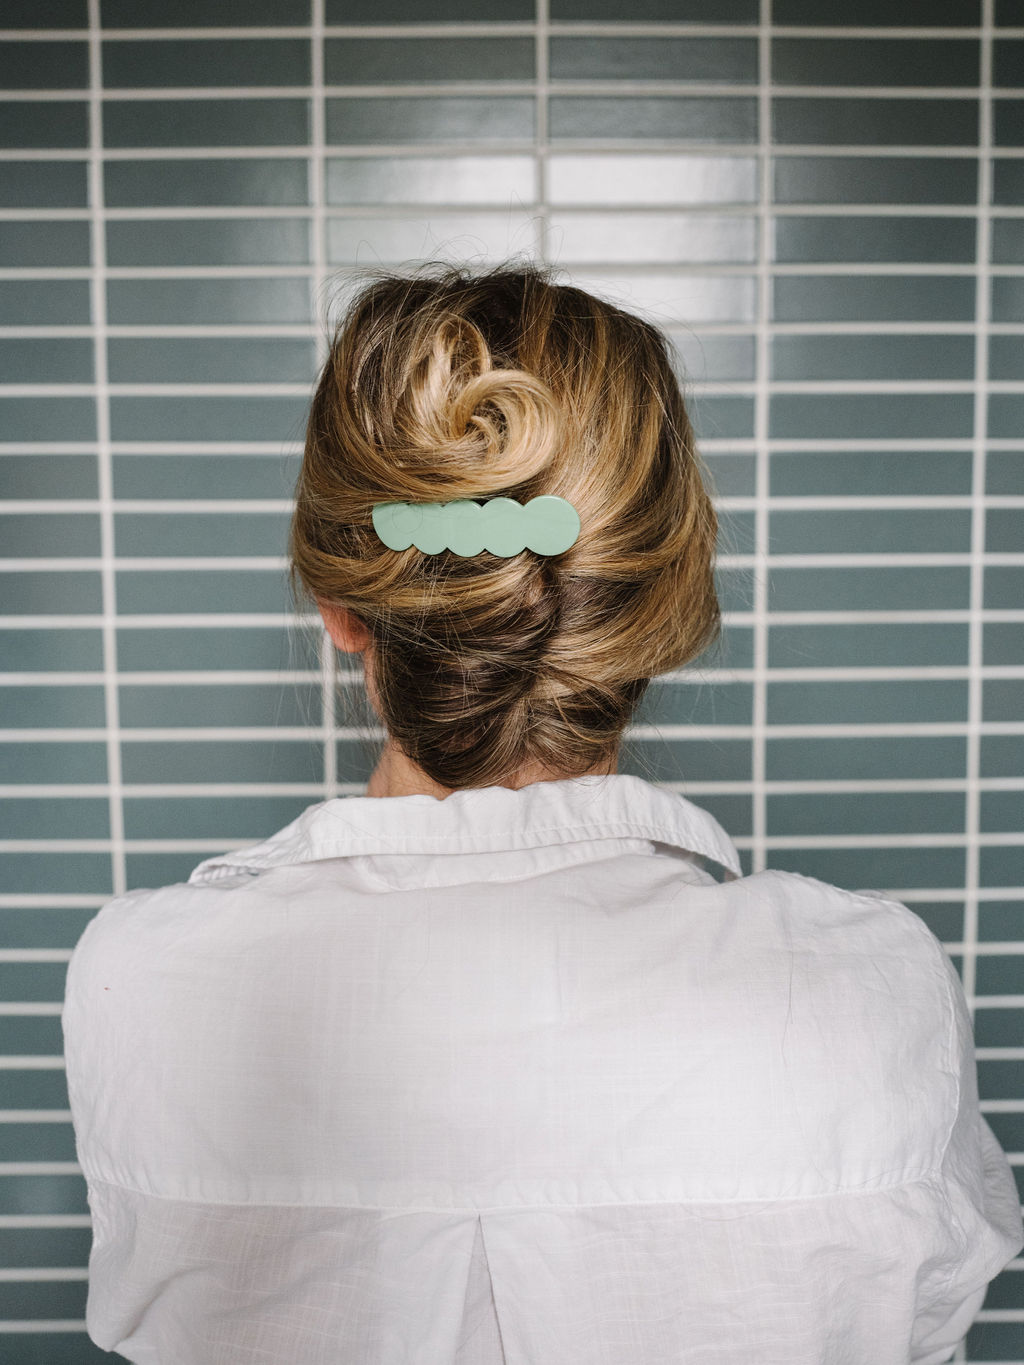 3 Minute Hairstyles: How to Do a Modern French Twist — The Effortless Chic